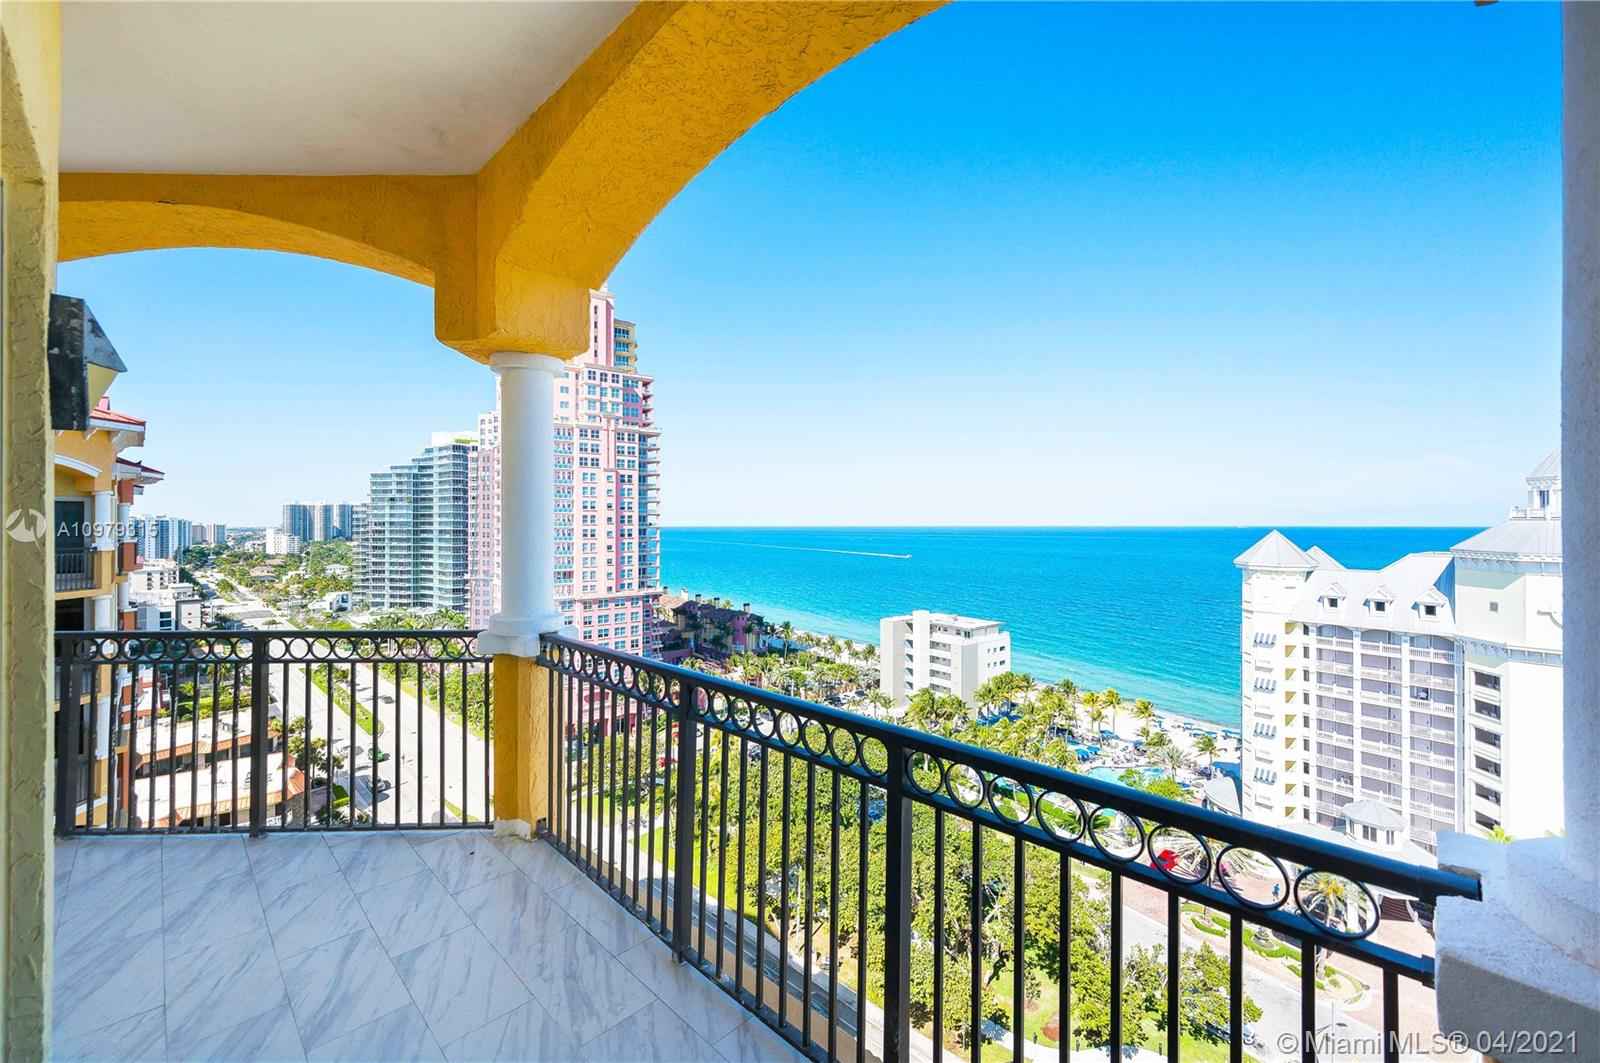 Top-floor unit at Vue with the most breathtaking ocean views. This charming and rare 3 bedrooms and 3 baths is a South Florida dream! Prepare to be swept off your feet from the moment you walk in the door. Enjoy both ocean and Intracoastal views. Each bedroom has its own private balcony. The Vue is a luxury beachfront condominium complex well known for the upscale amenities and gorgeous interior features. Located in the heart of Fort Lauderdale close to Las Olas, Galleria Mall, and all the upscale beachfront restaurants Fort Lauderdale has to offer. Cabana for sale separately. Offered at $160,000.